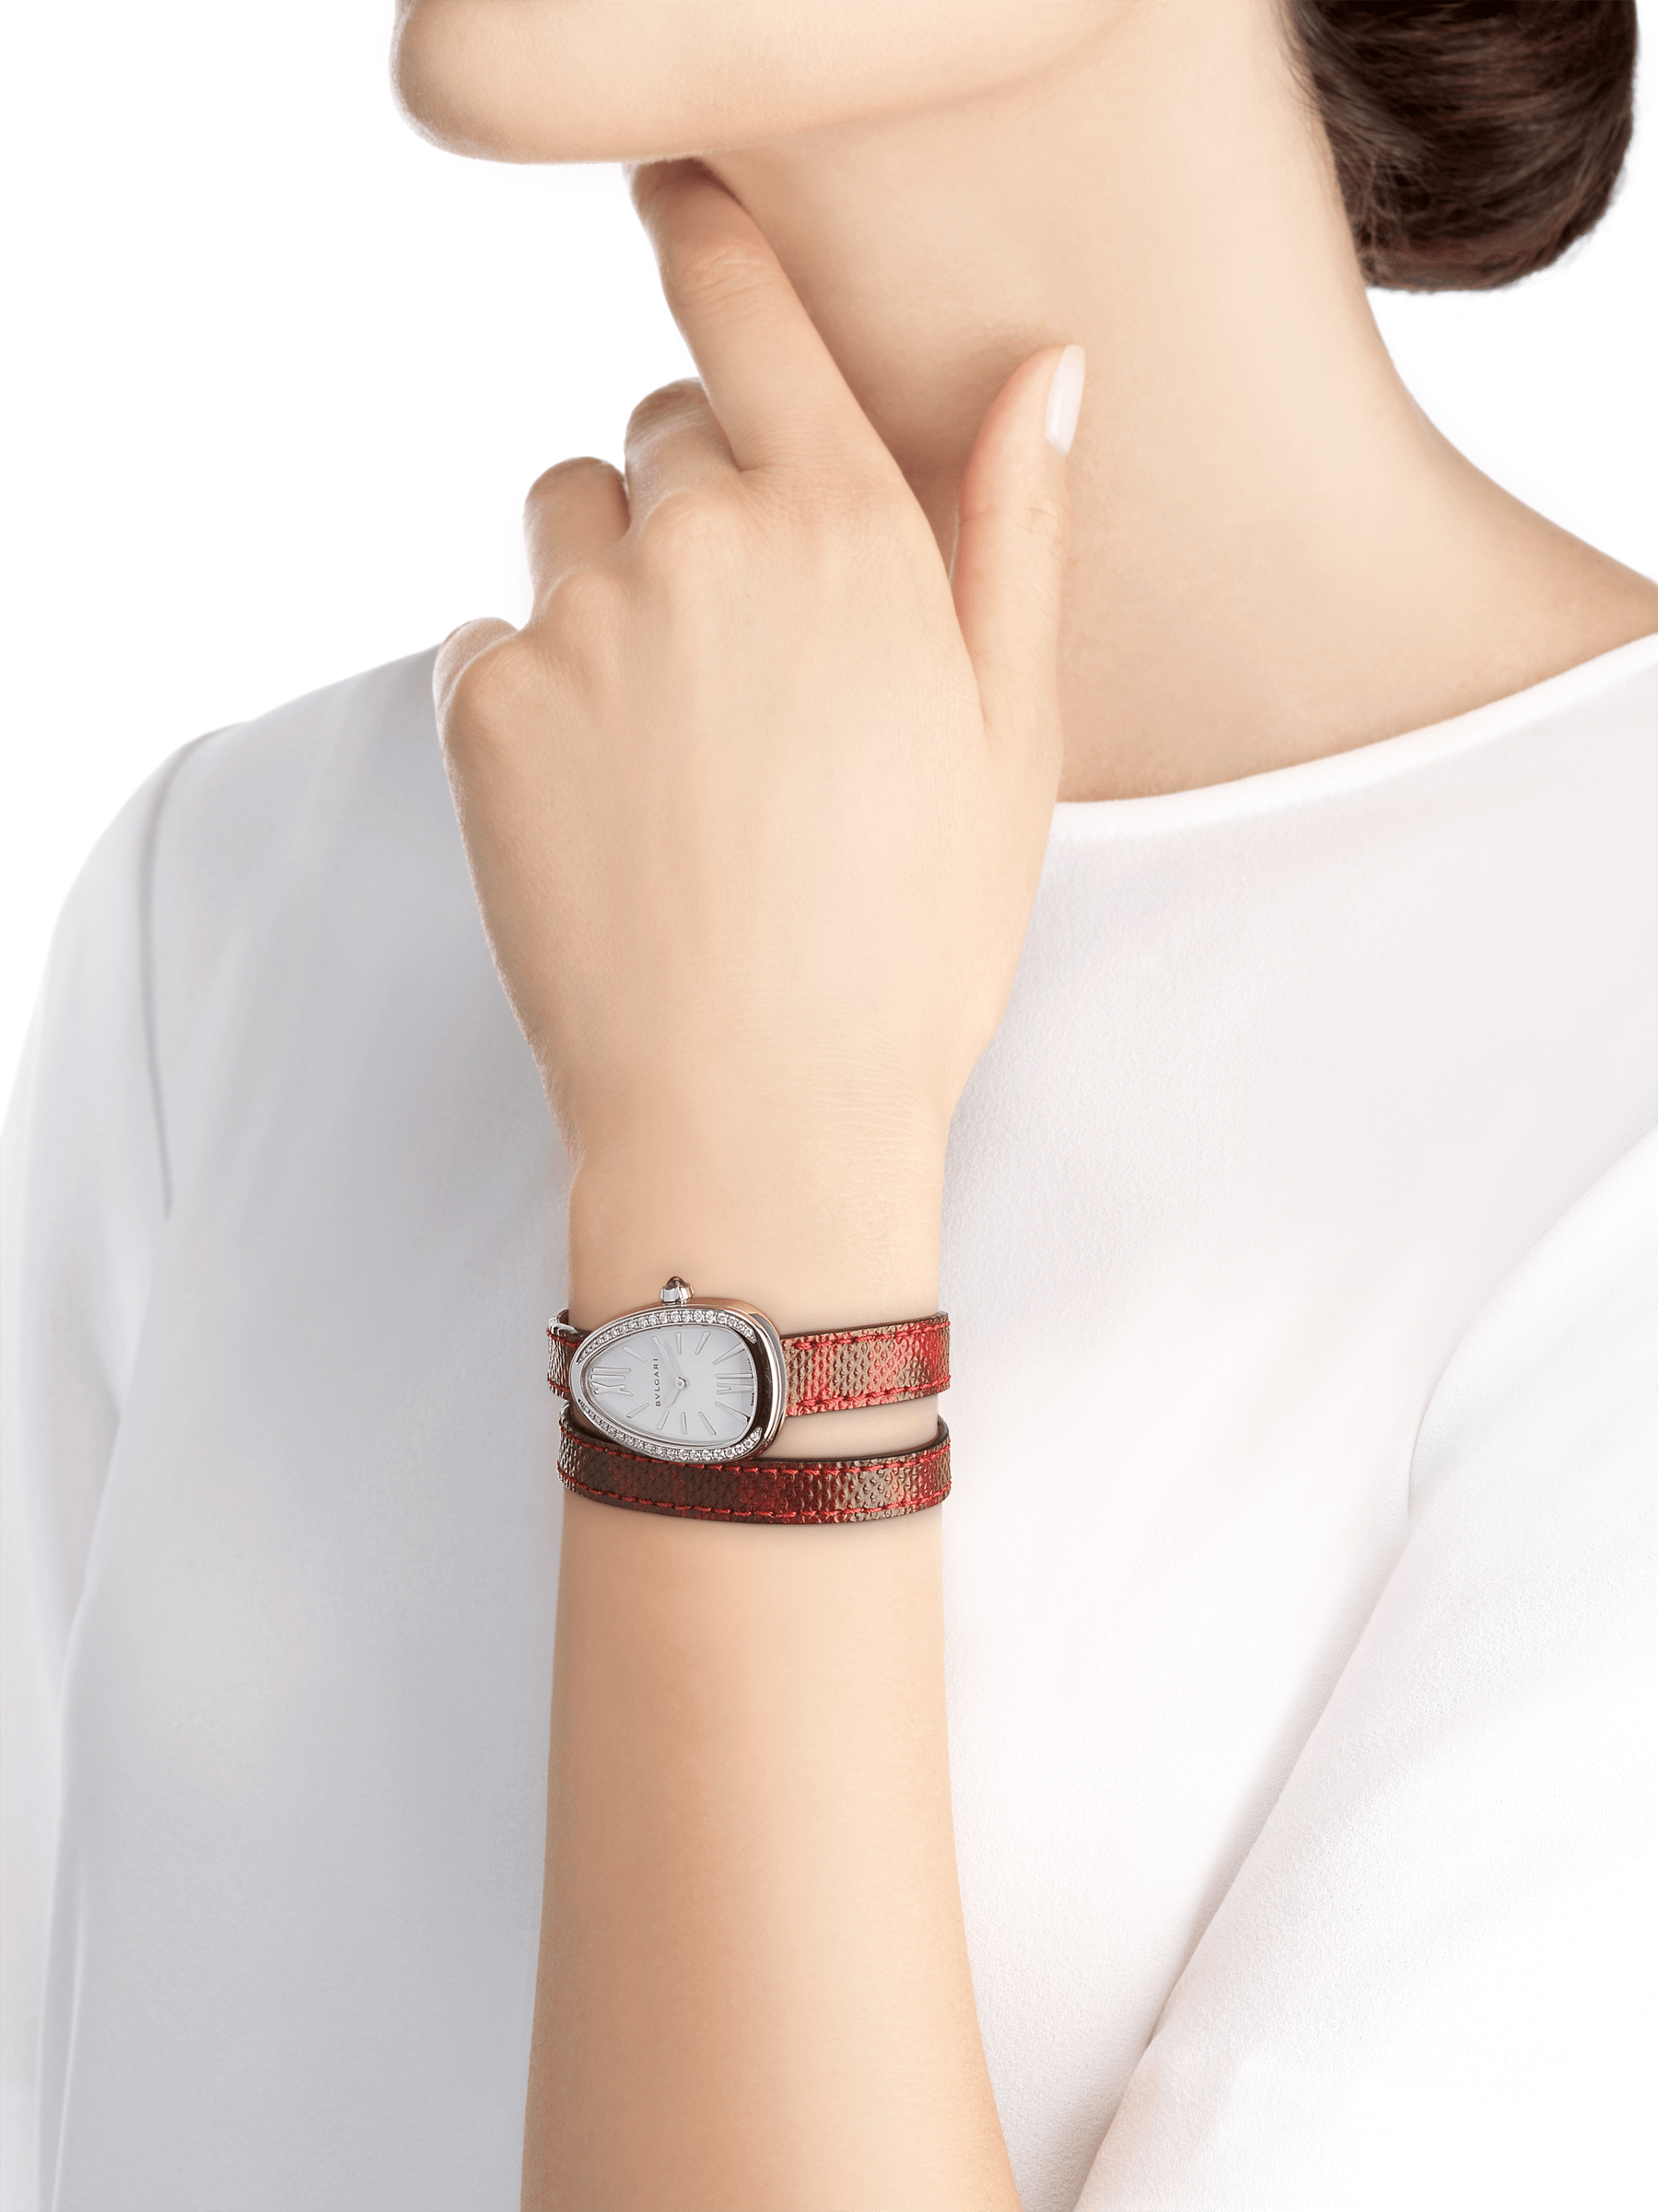 Serpenti watch with stainless steel case set with round brilliant-cut diamonds, white mother-of-pearl dial and interchangeable double spiral bracelet in red karung leather 102920 image 3